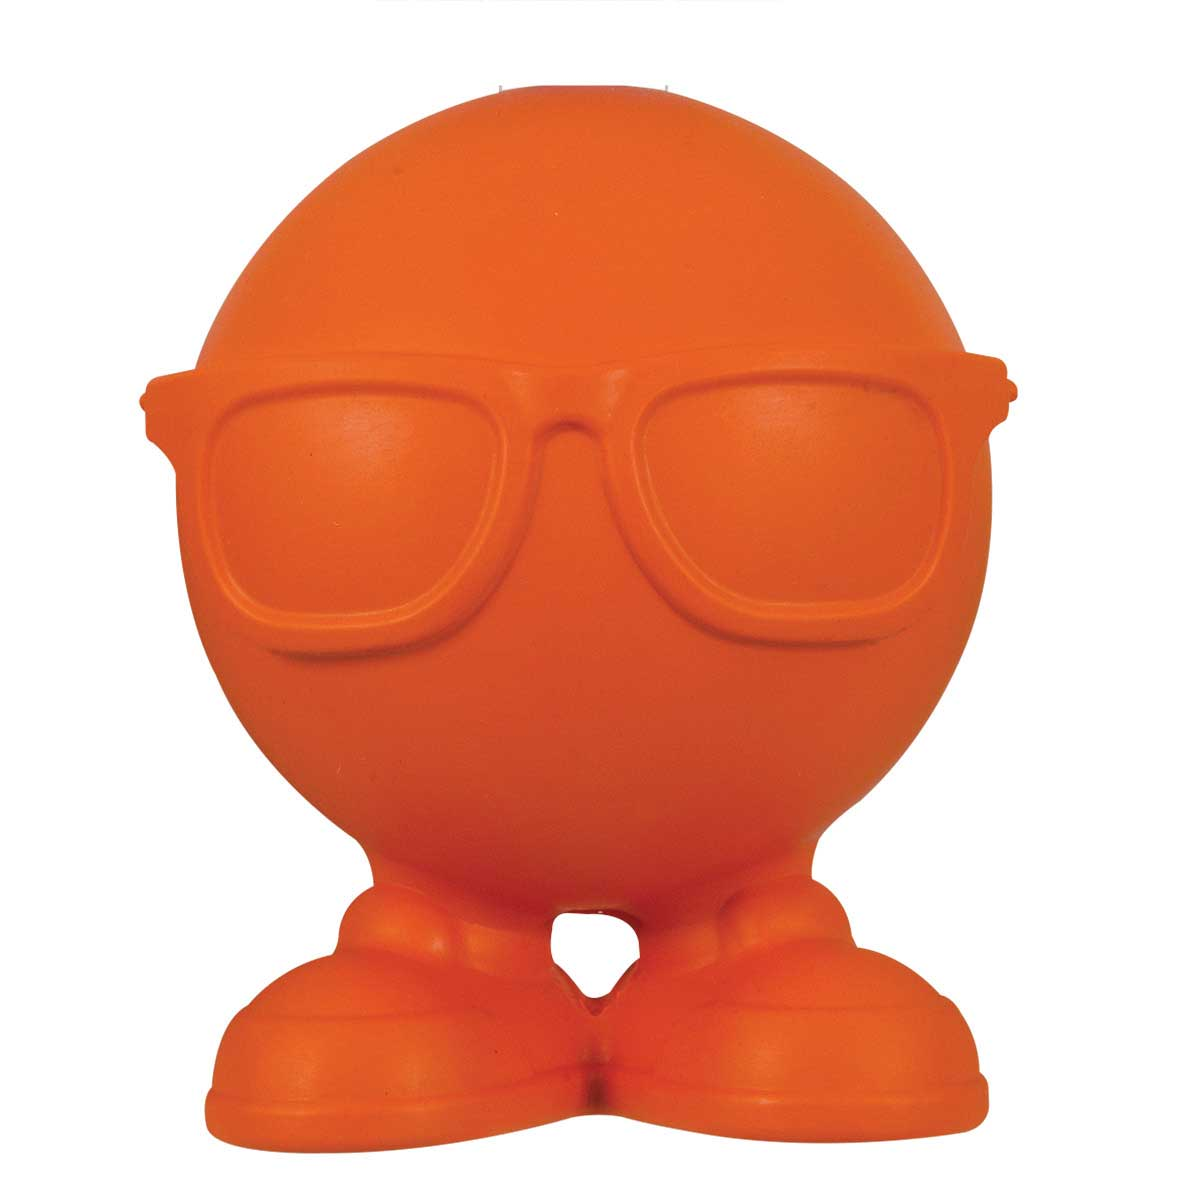 Rubber JW Hipster Cuz Dog Toy - Large 5.5 inch